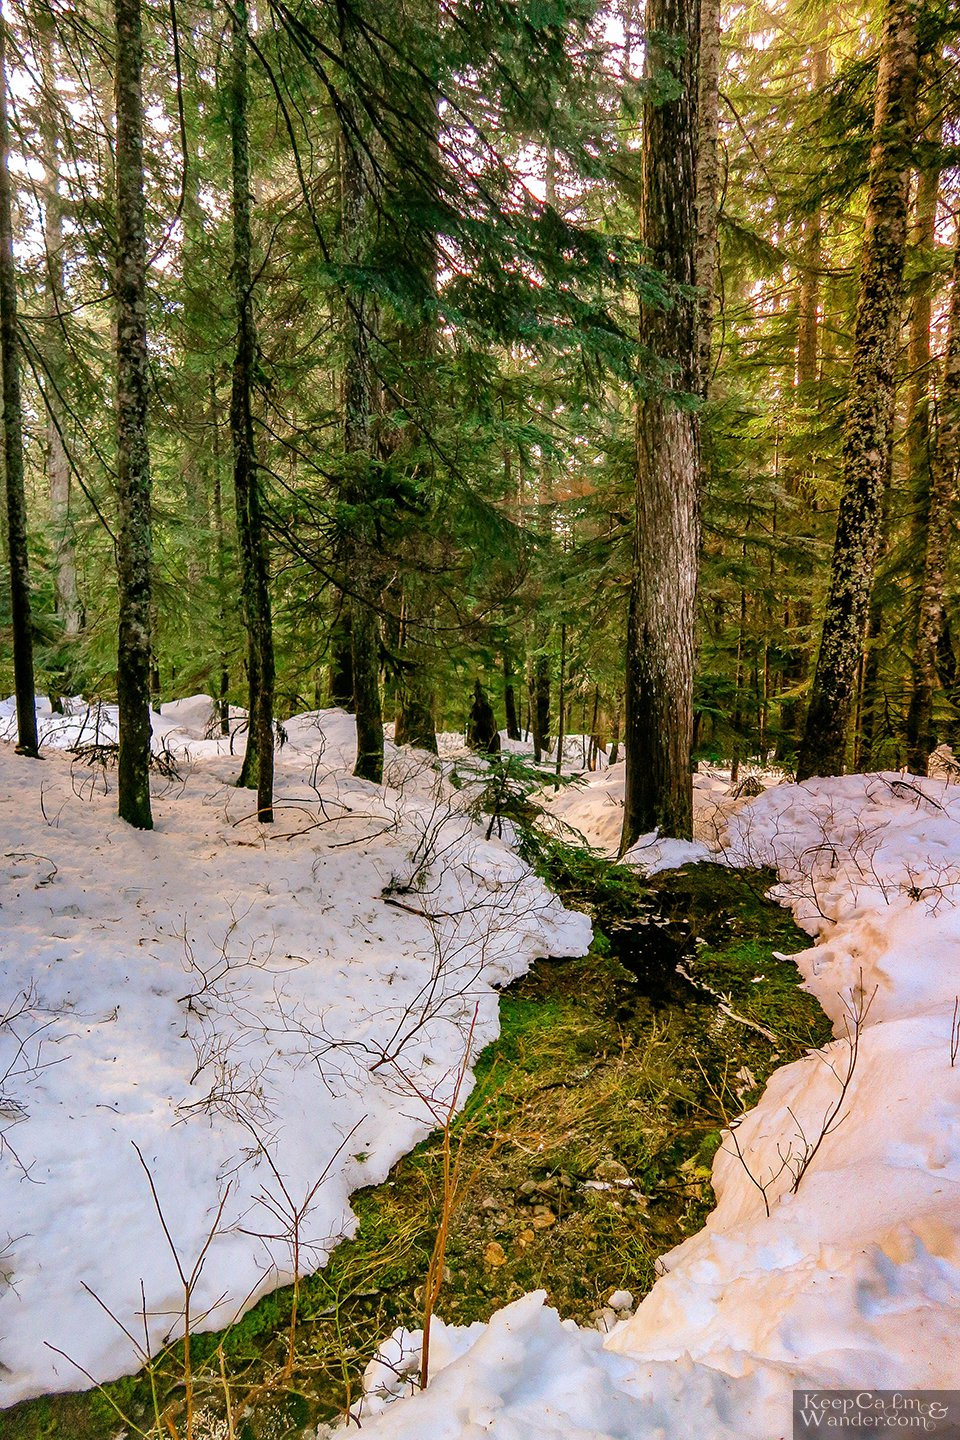 The Hollyburn Lodge Hiking Trail in Winter (West Vancouver, British Columbia). Canada Parks Travel Blog